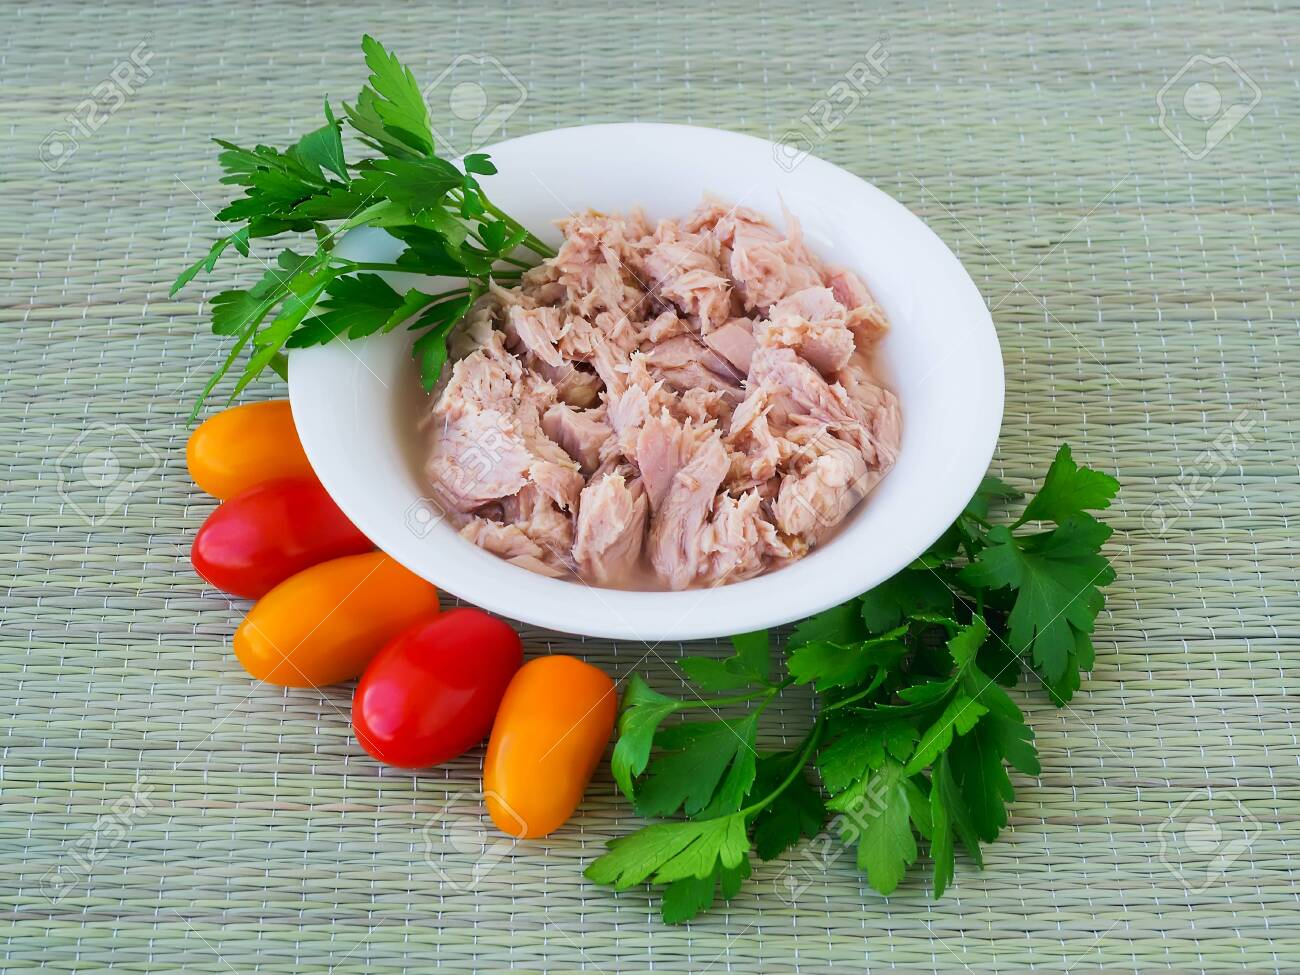 Canned tuna fillet in white porcelain bowl, parsley and some cherry tomatoes on a green table mat made of natural plant fibers. Seafood, healthy eating. Canned tuna for salads. - 124527178